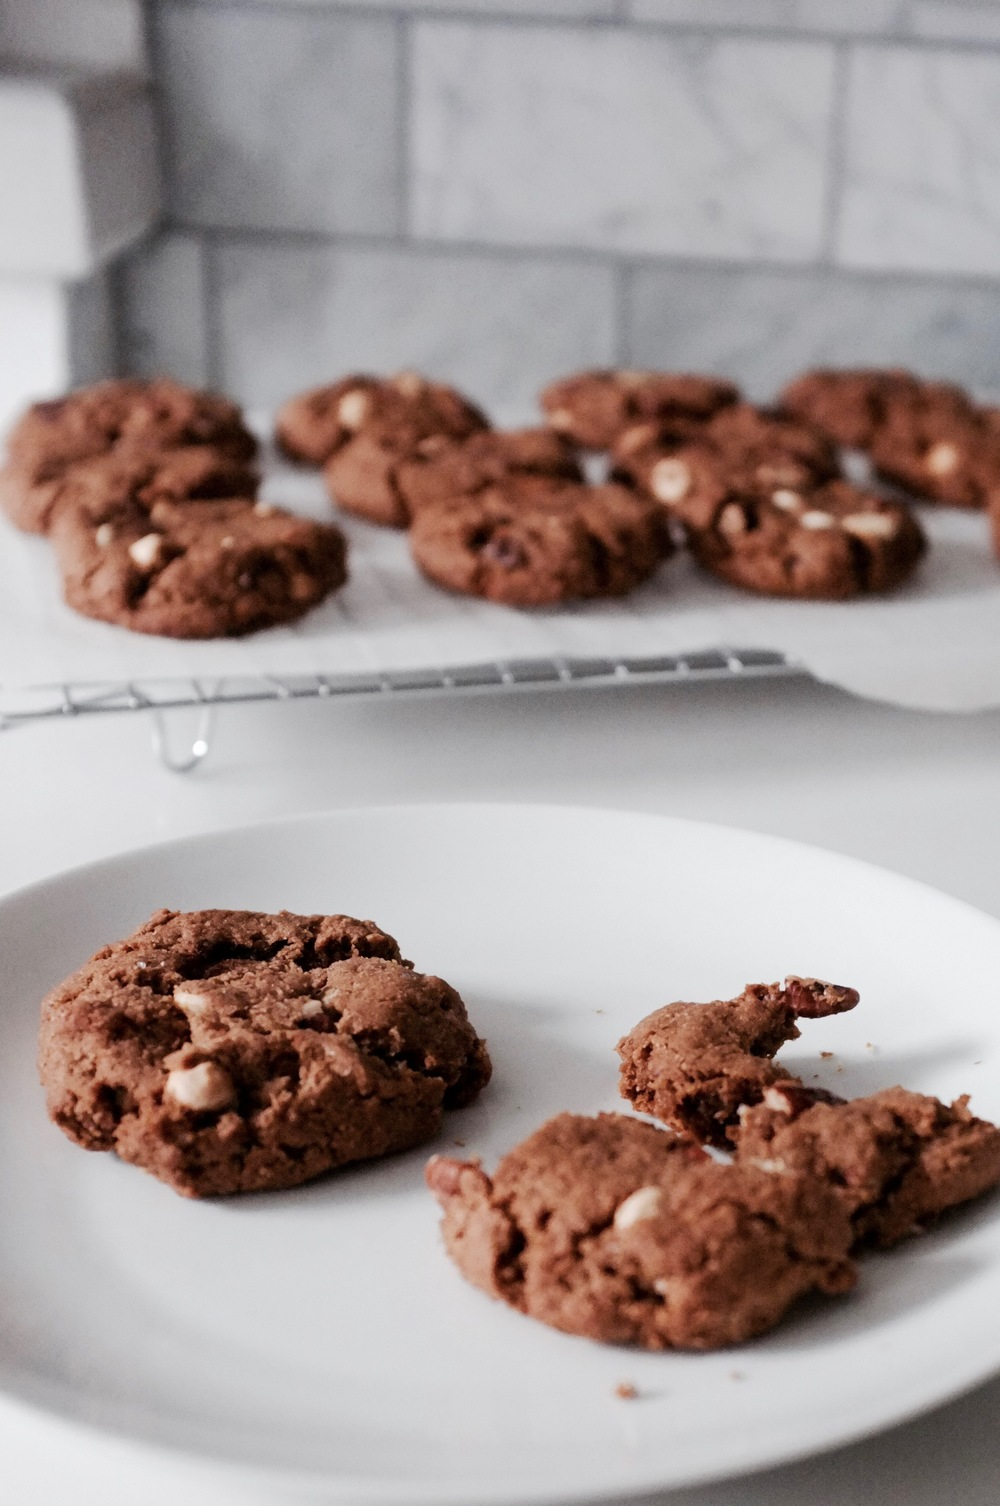 Last Minute Molasses Dump Cookies - Hill Reeves